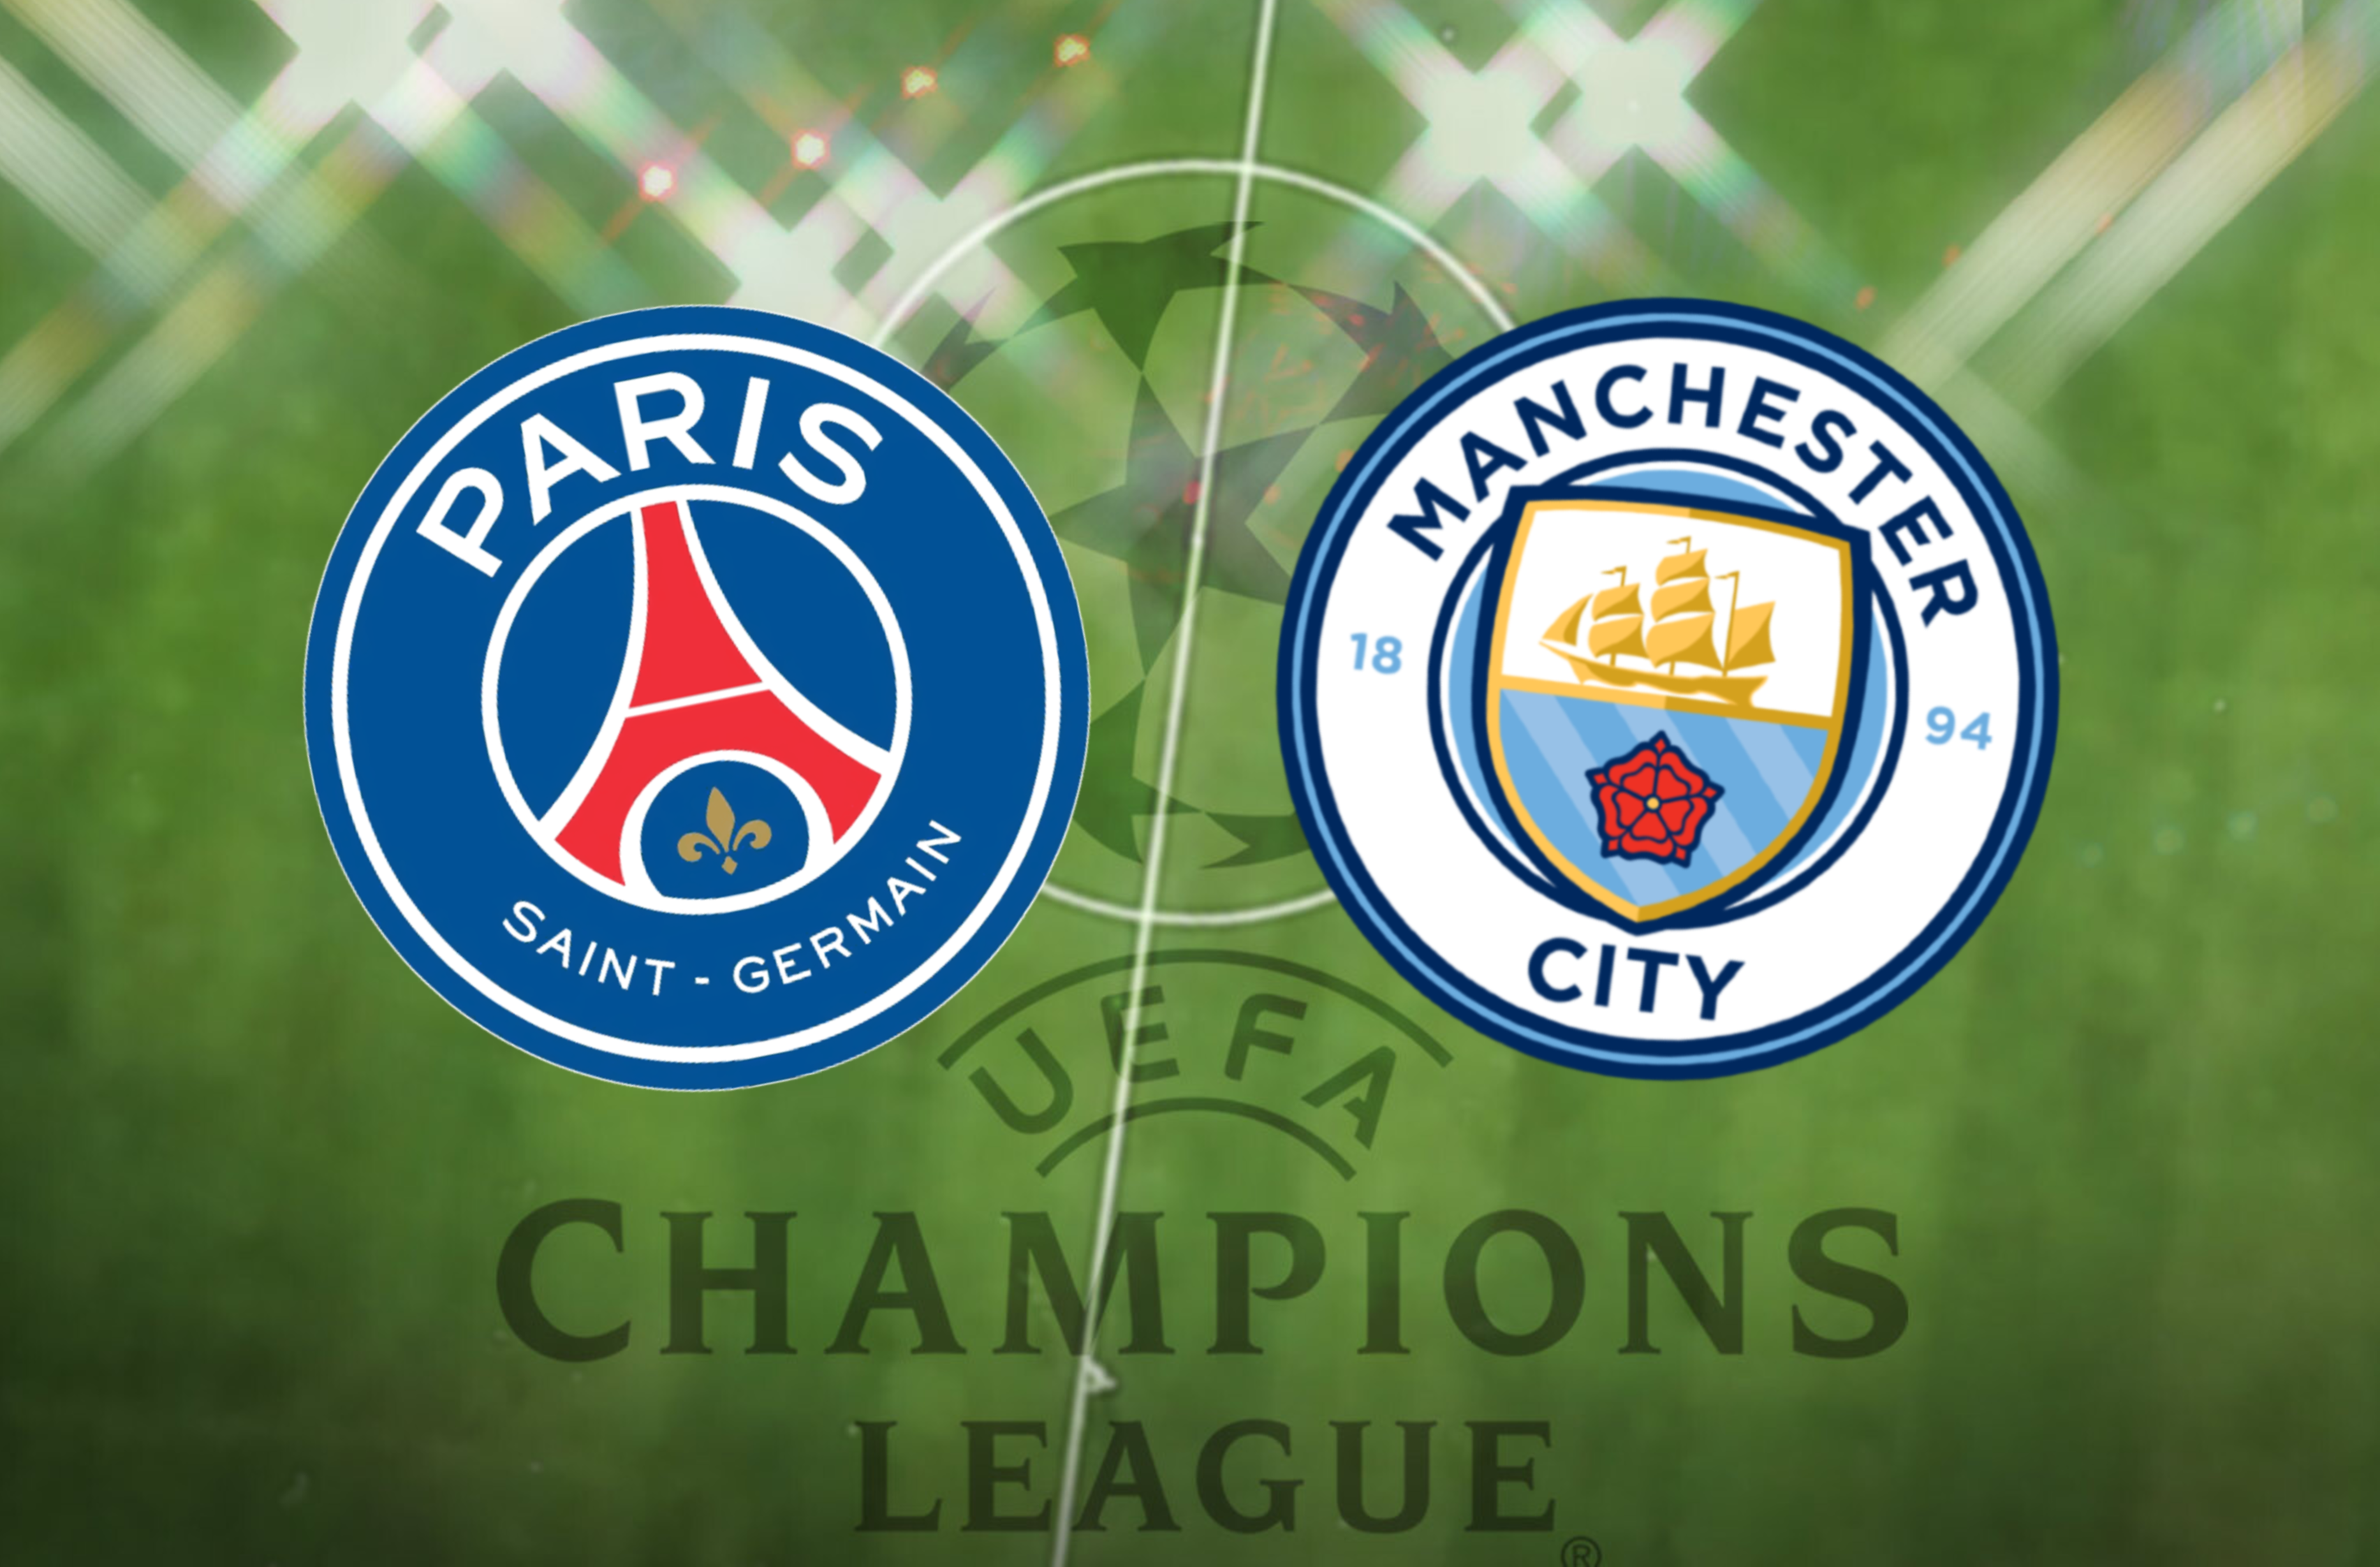 PSG vs Man City: Uefa Champions League prediction, TV channel, h2h results, team news, live stream, odds today